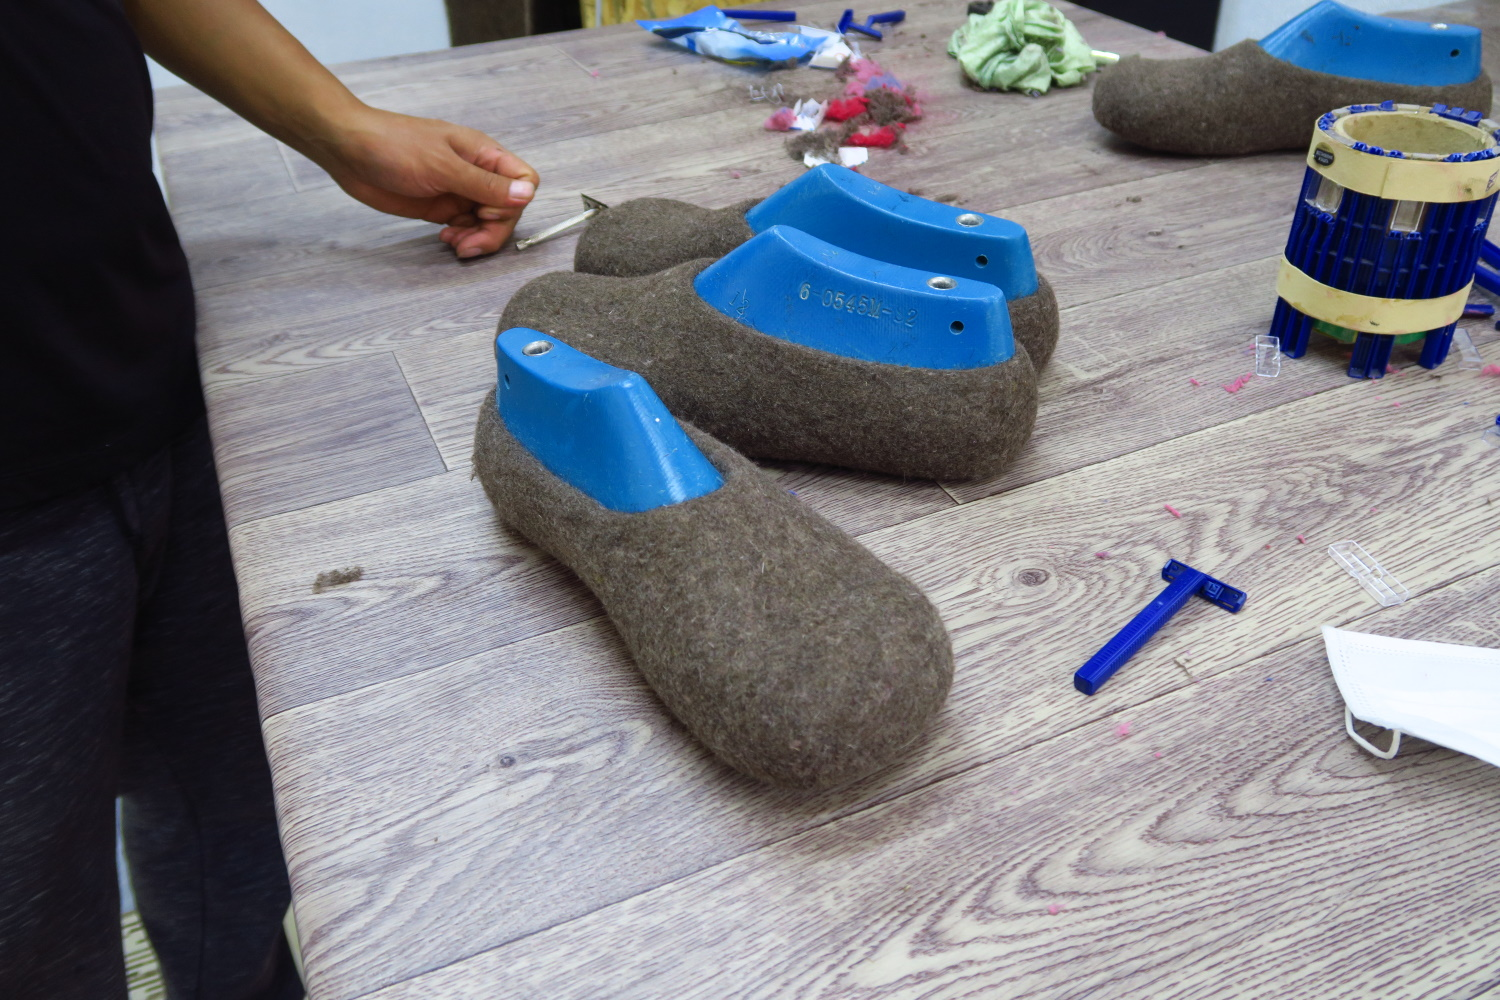 When the slippers are done, they shave them to get the little fuzzies off!